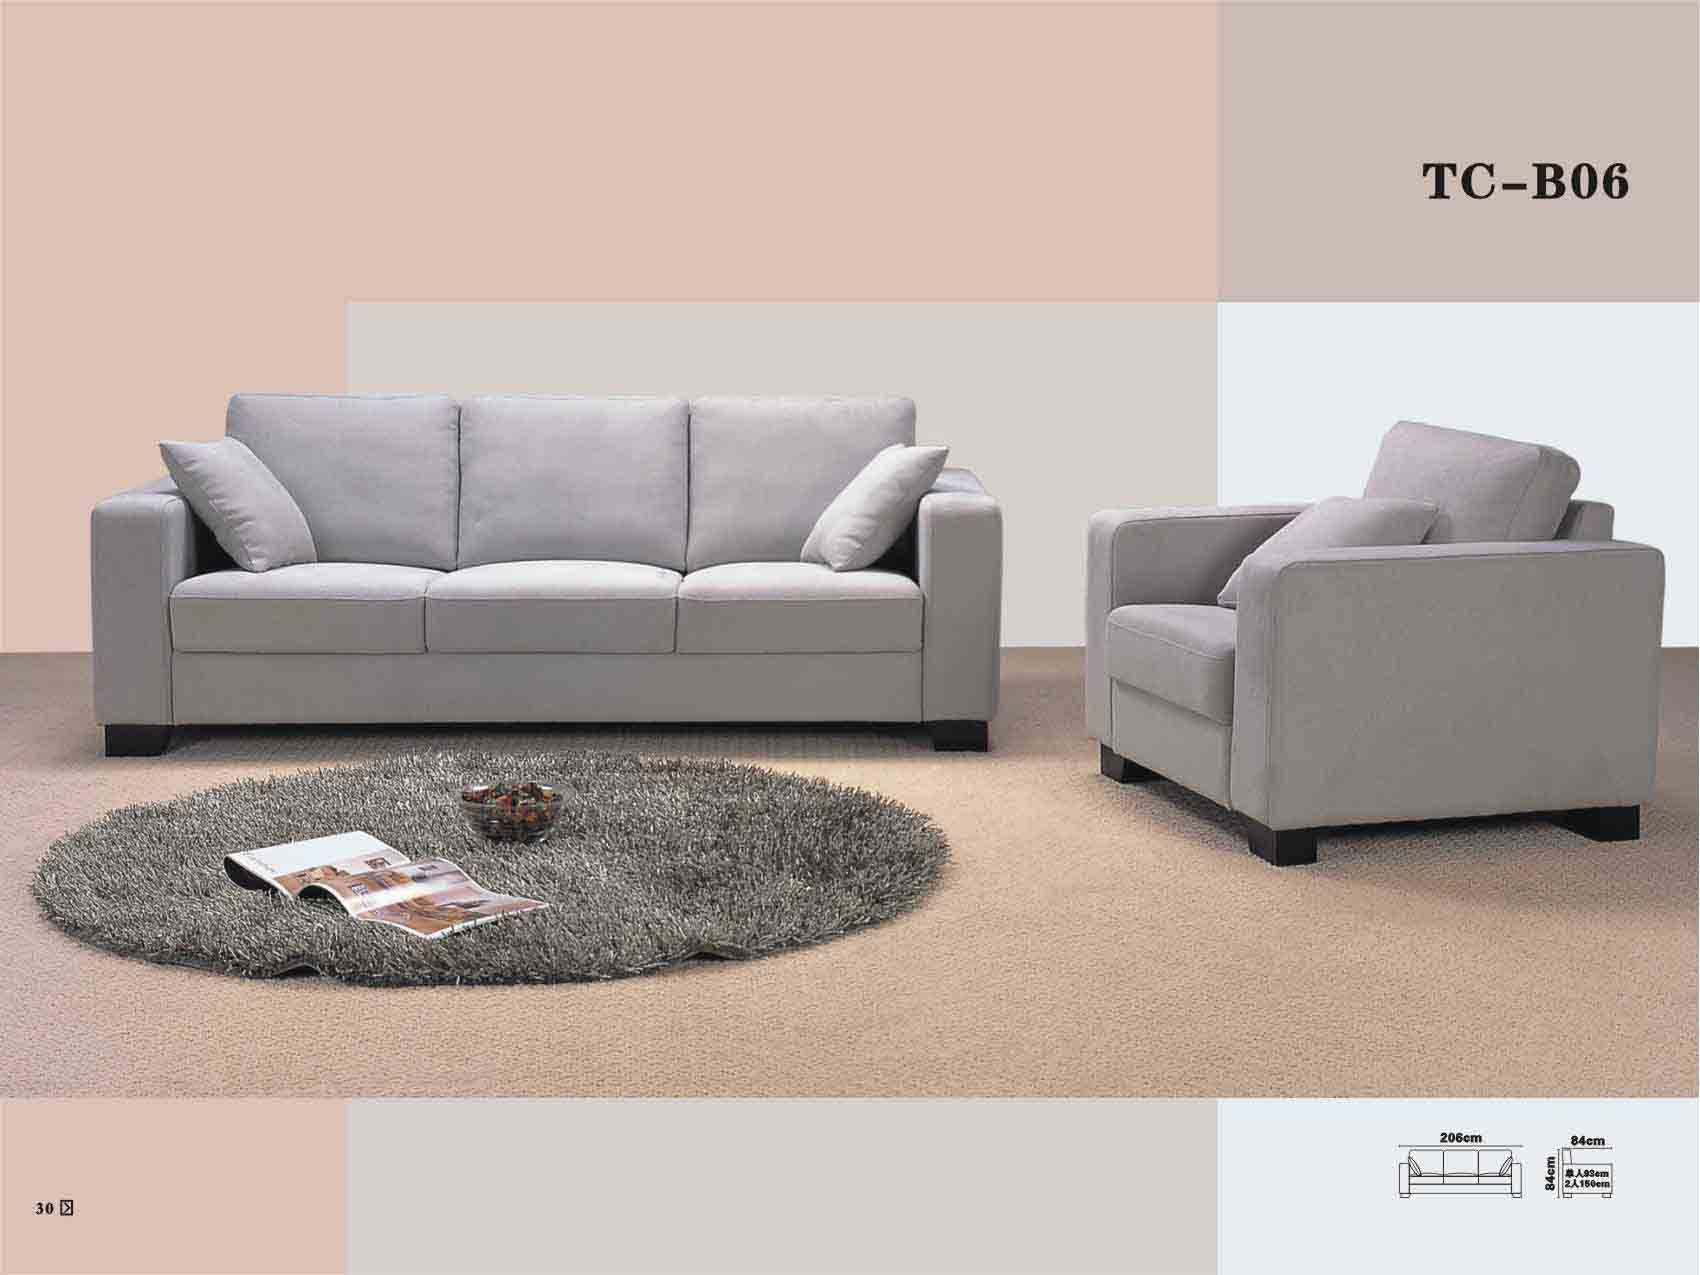 China contemporary modern sofa tc b06 china sofa for Contemporary sofa